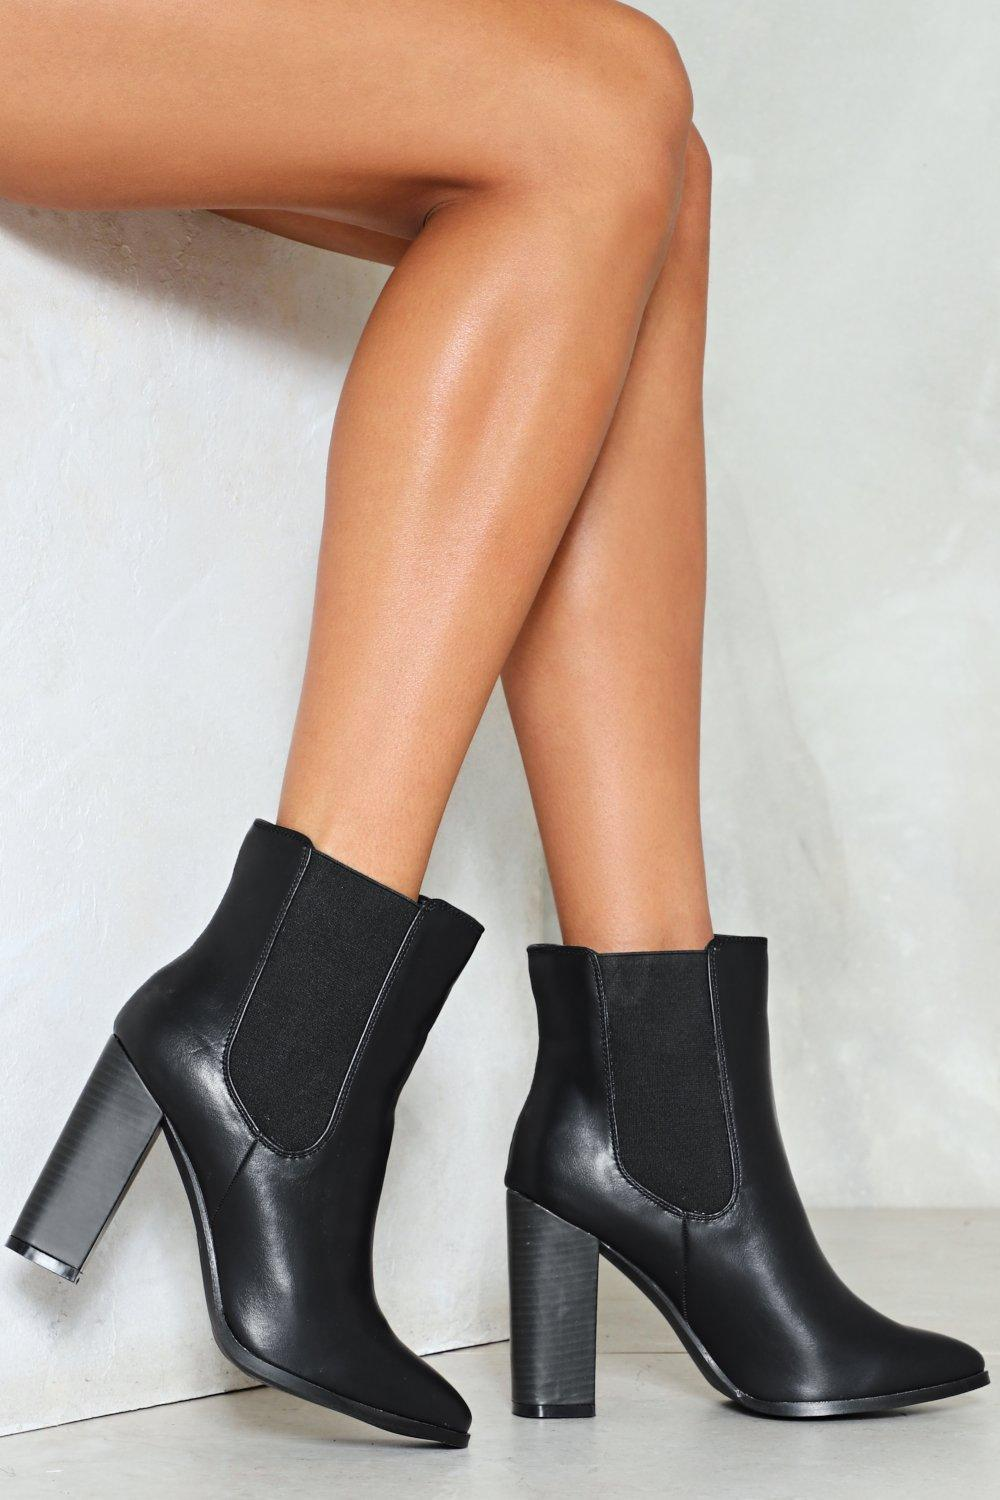 114b40ee7f41 Womens Black Into the Groove Ankle Boot. Hover to zoom